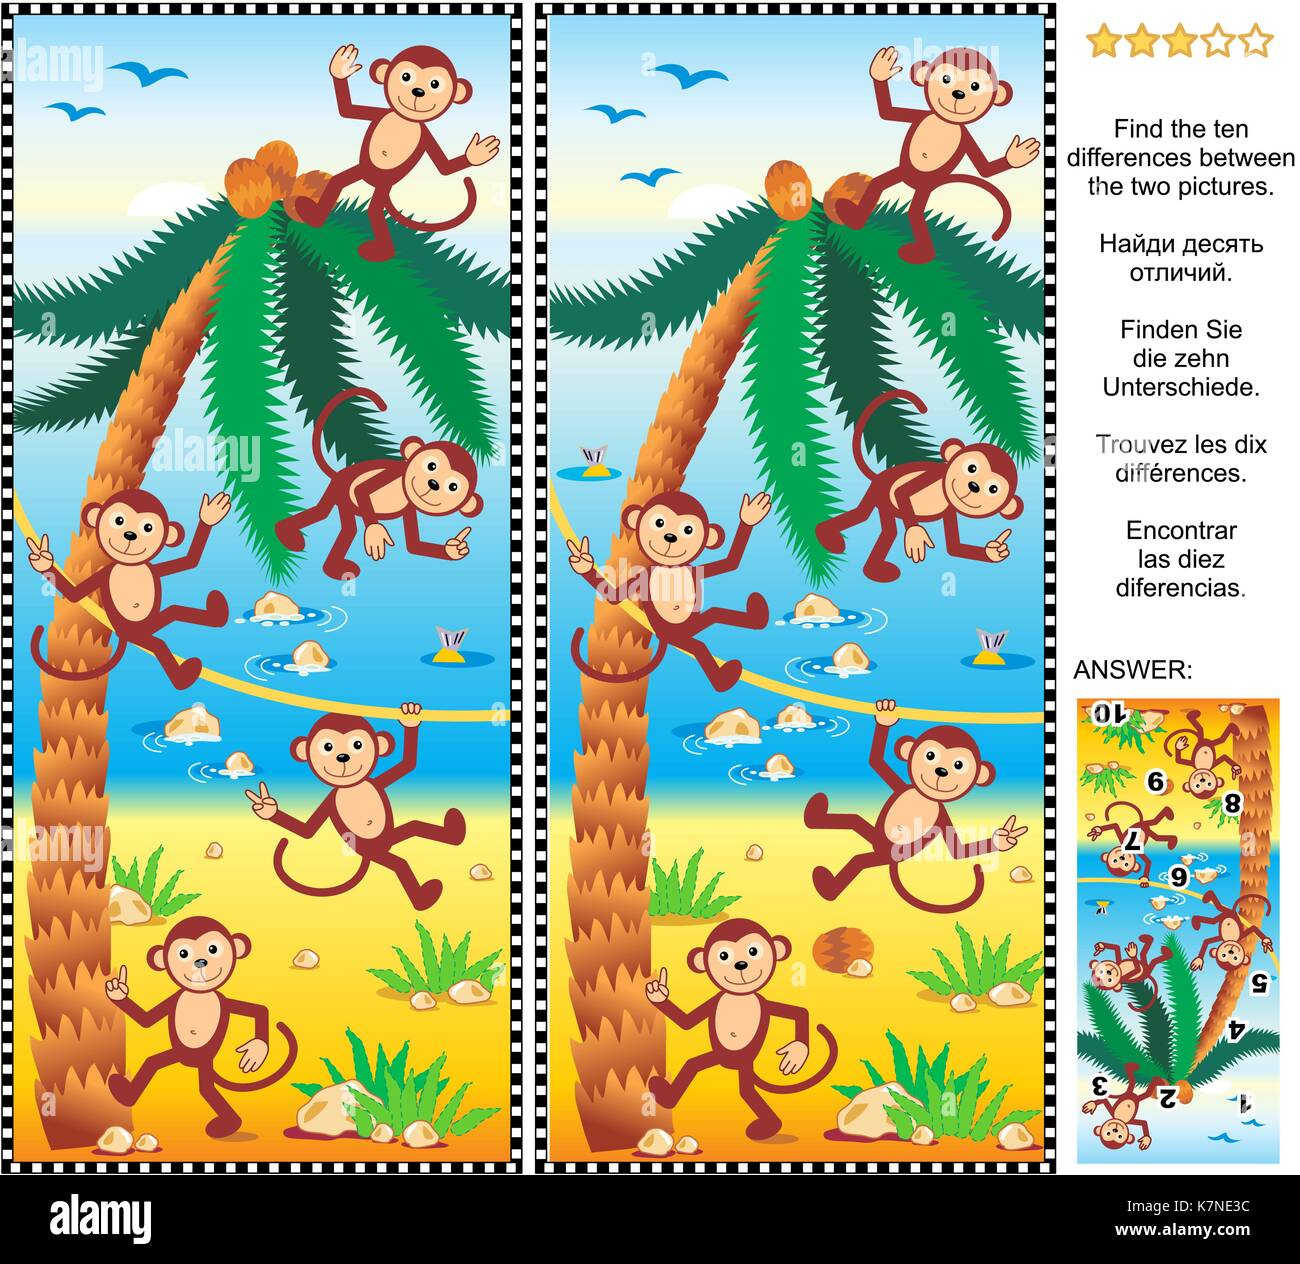 Visual puzzle: Find the ten differences between the two pictures - playful monkeys, beach, coconut palm. Answer - Stock Image